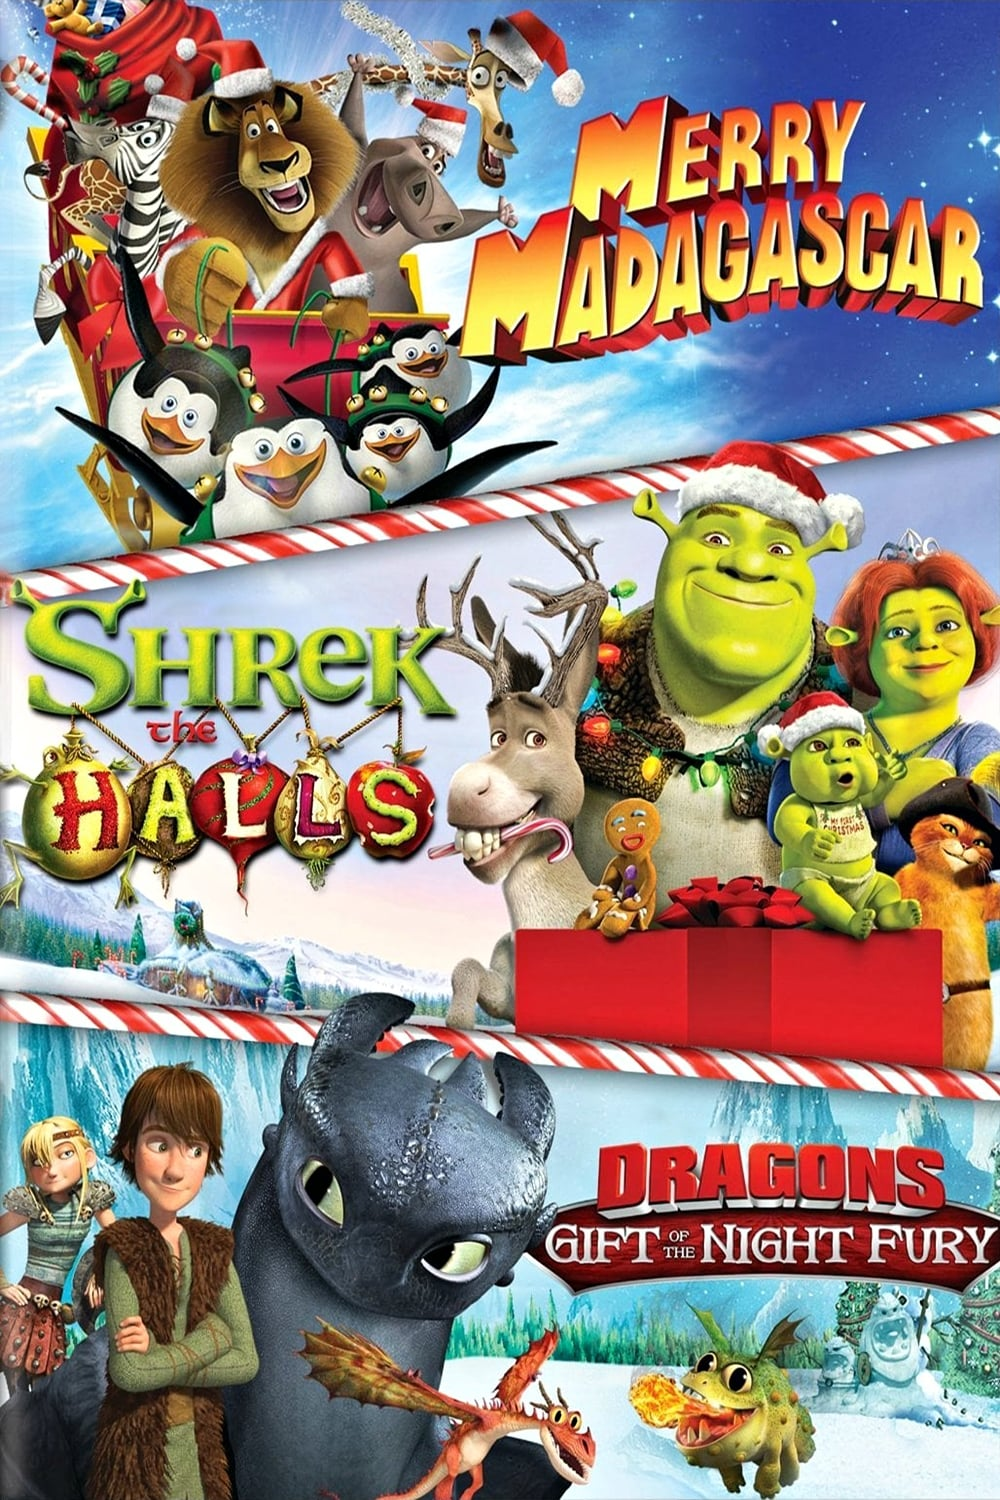 Dreamworks Holiday Classics (Merry Madagascar / Shrek the Halls / Gift of the Night Fury) (2012)